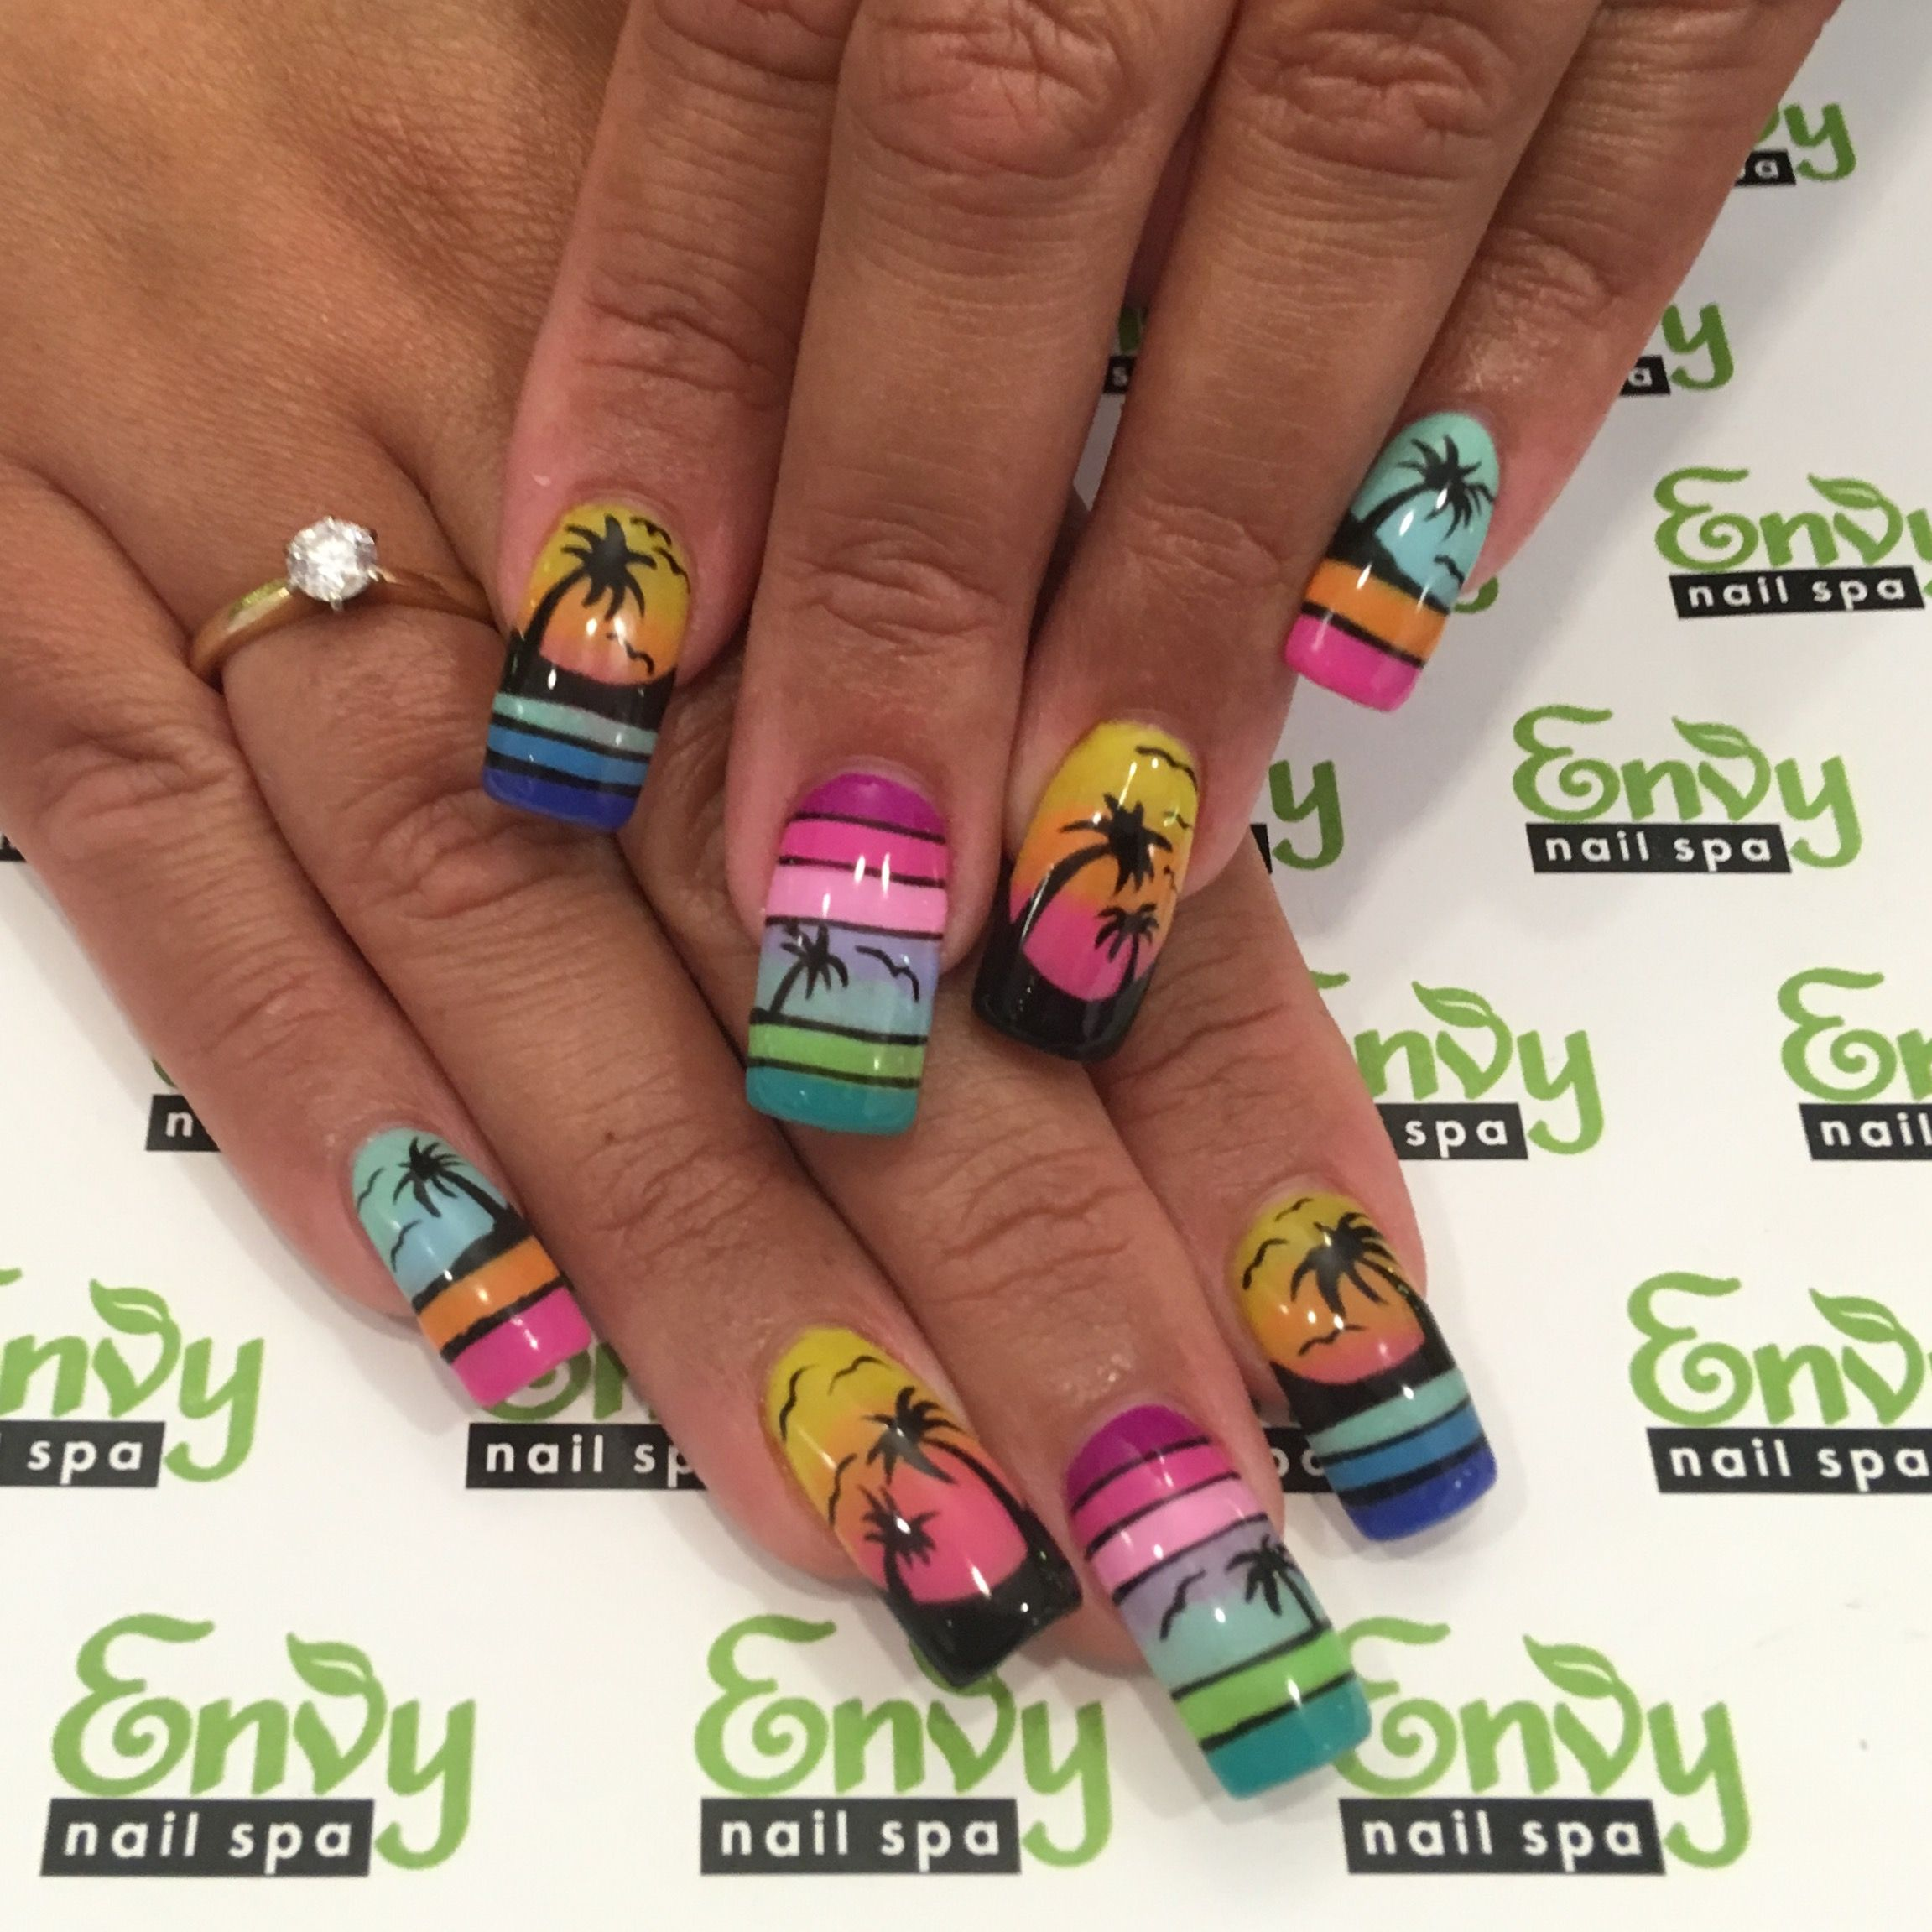 Summer Palm Tree Sunset Silhouette Birds Seagull Island Tropical Neon Nails Envy Nail Spa Others Nail Art Summer Acrylic Nails Nails Neon Nails